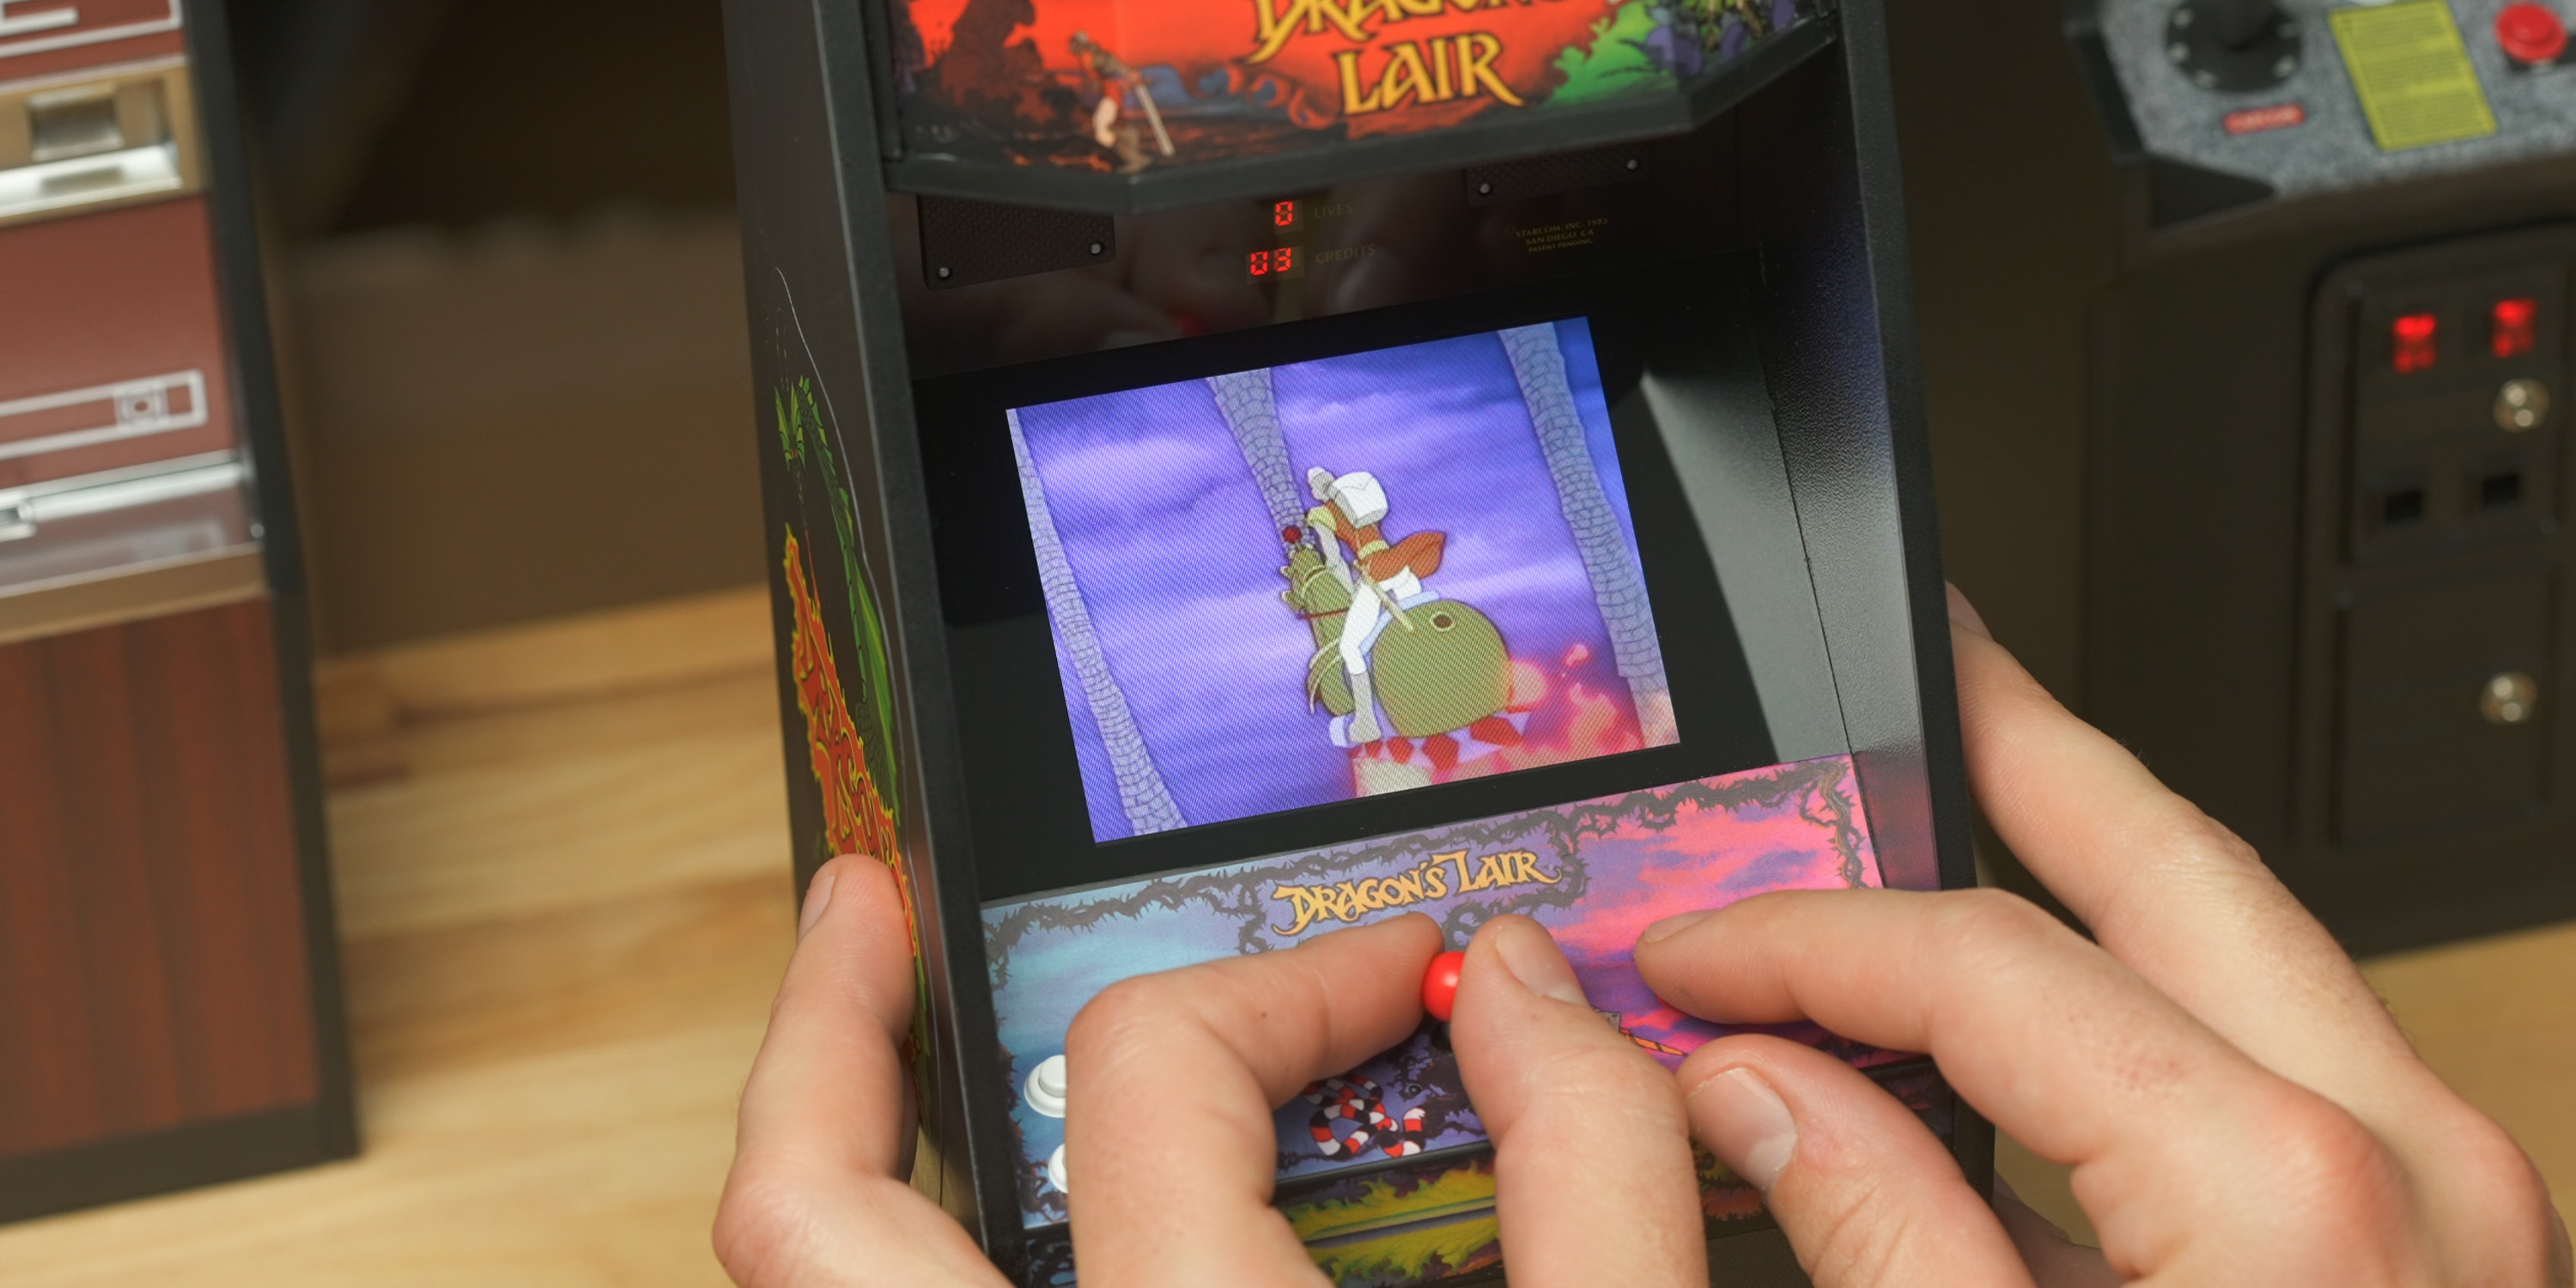 Playing the Dragon's Lair x Replicade cabinet